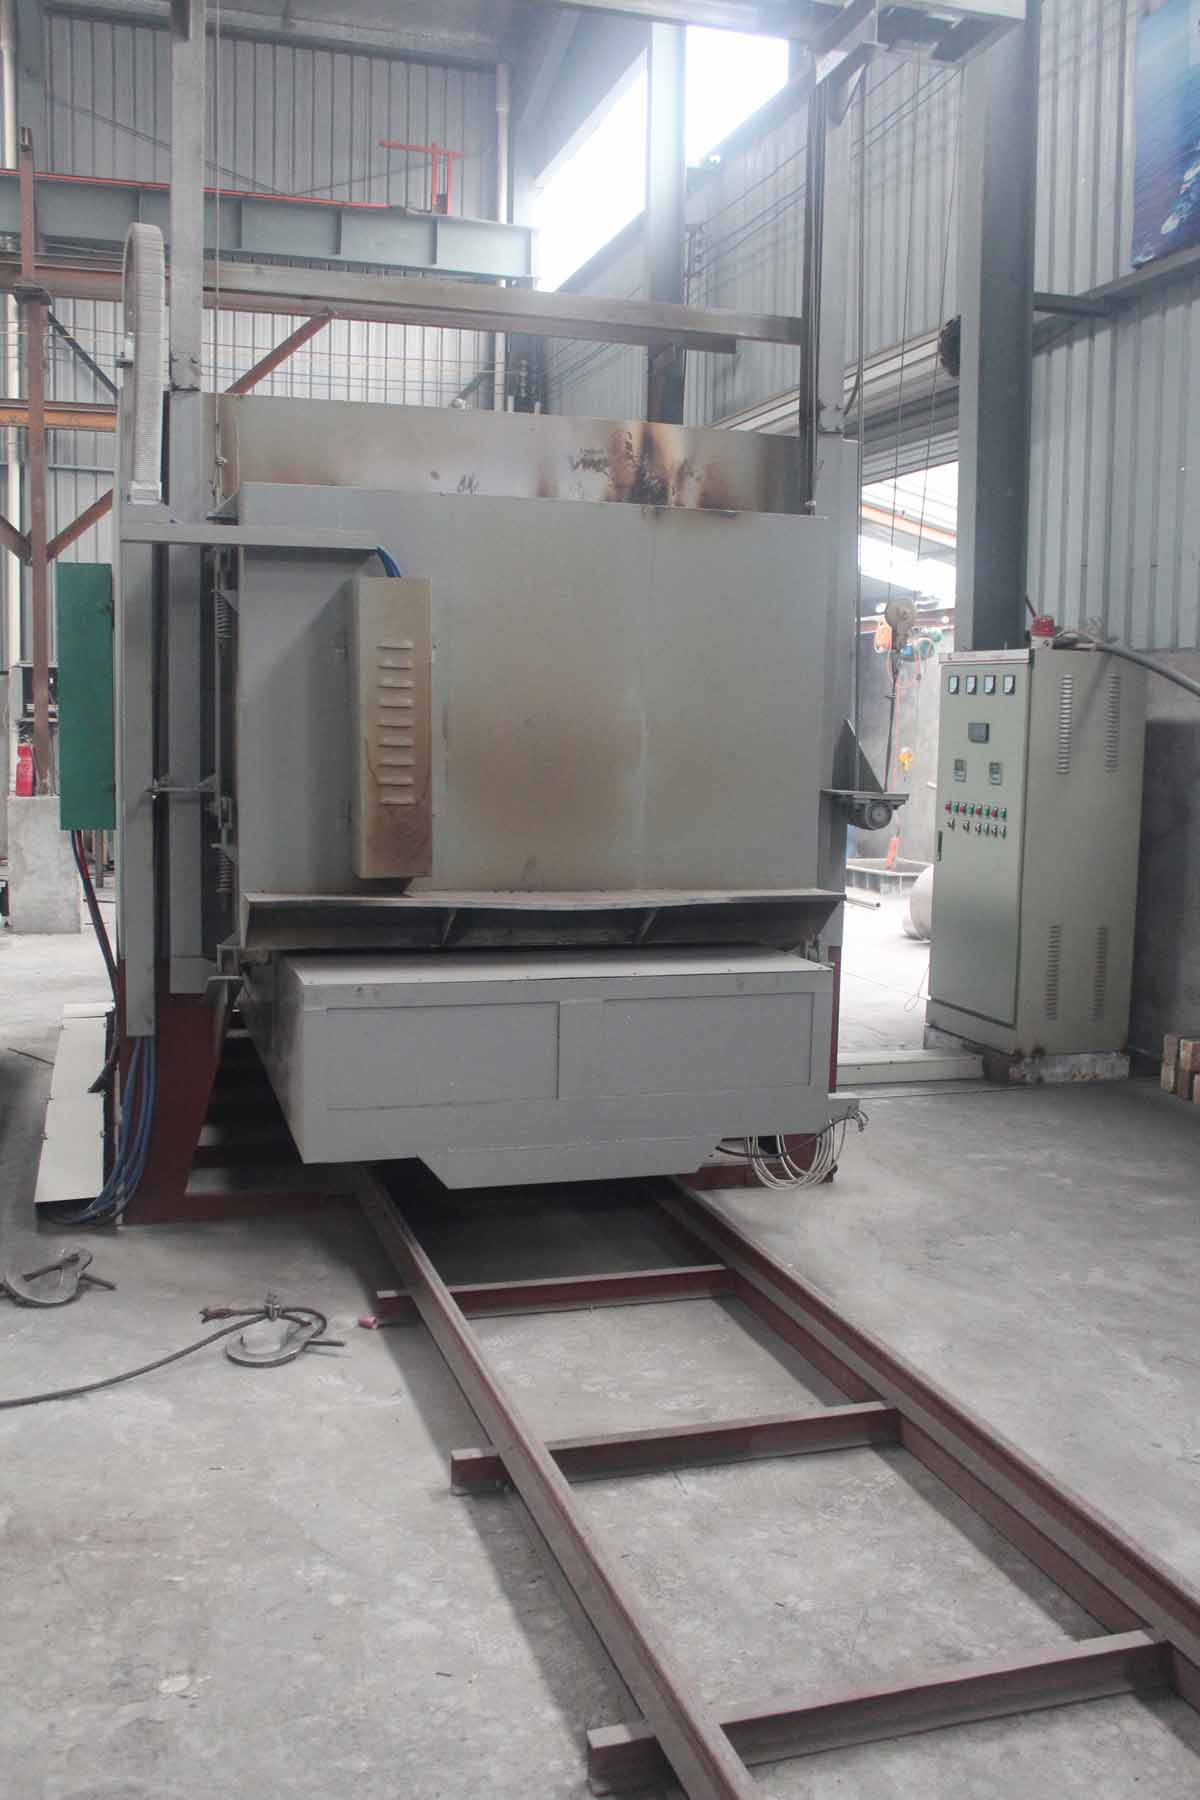 Furnace for Heattreatment